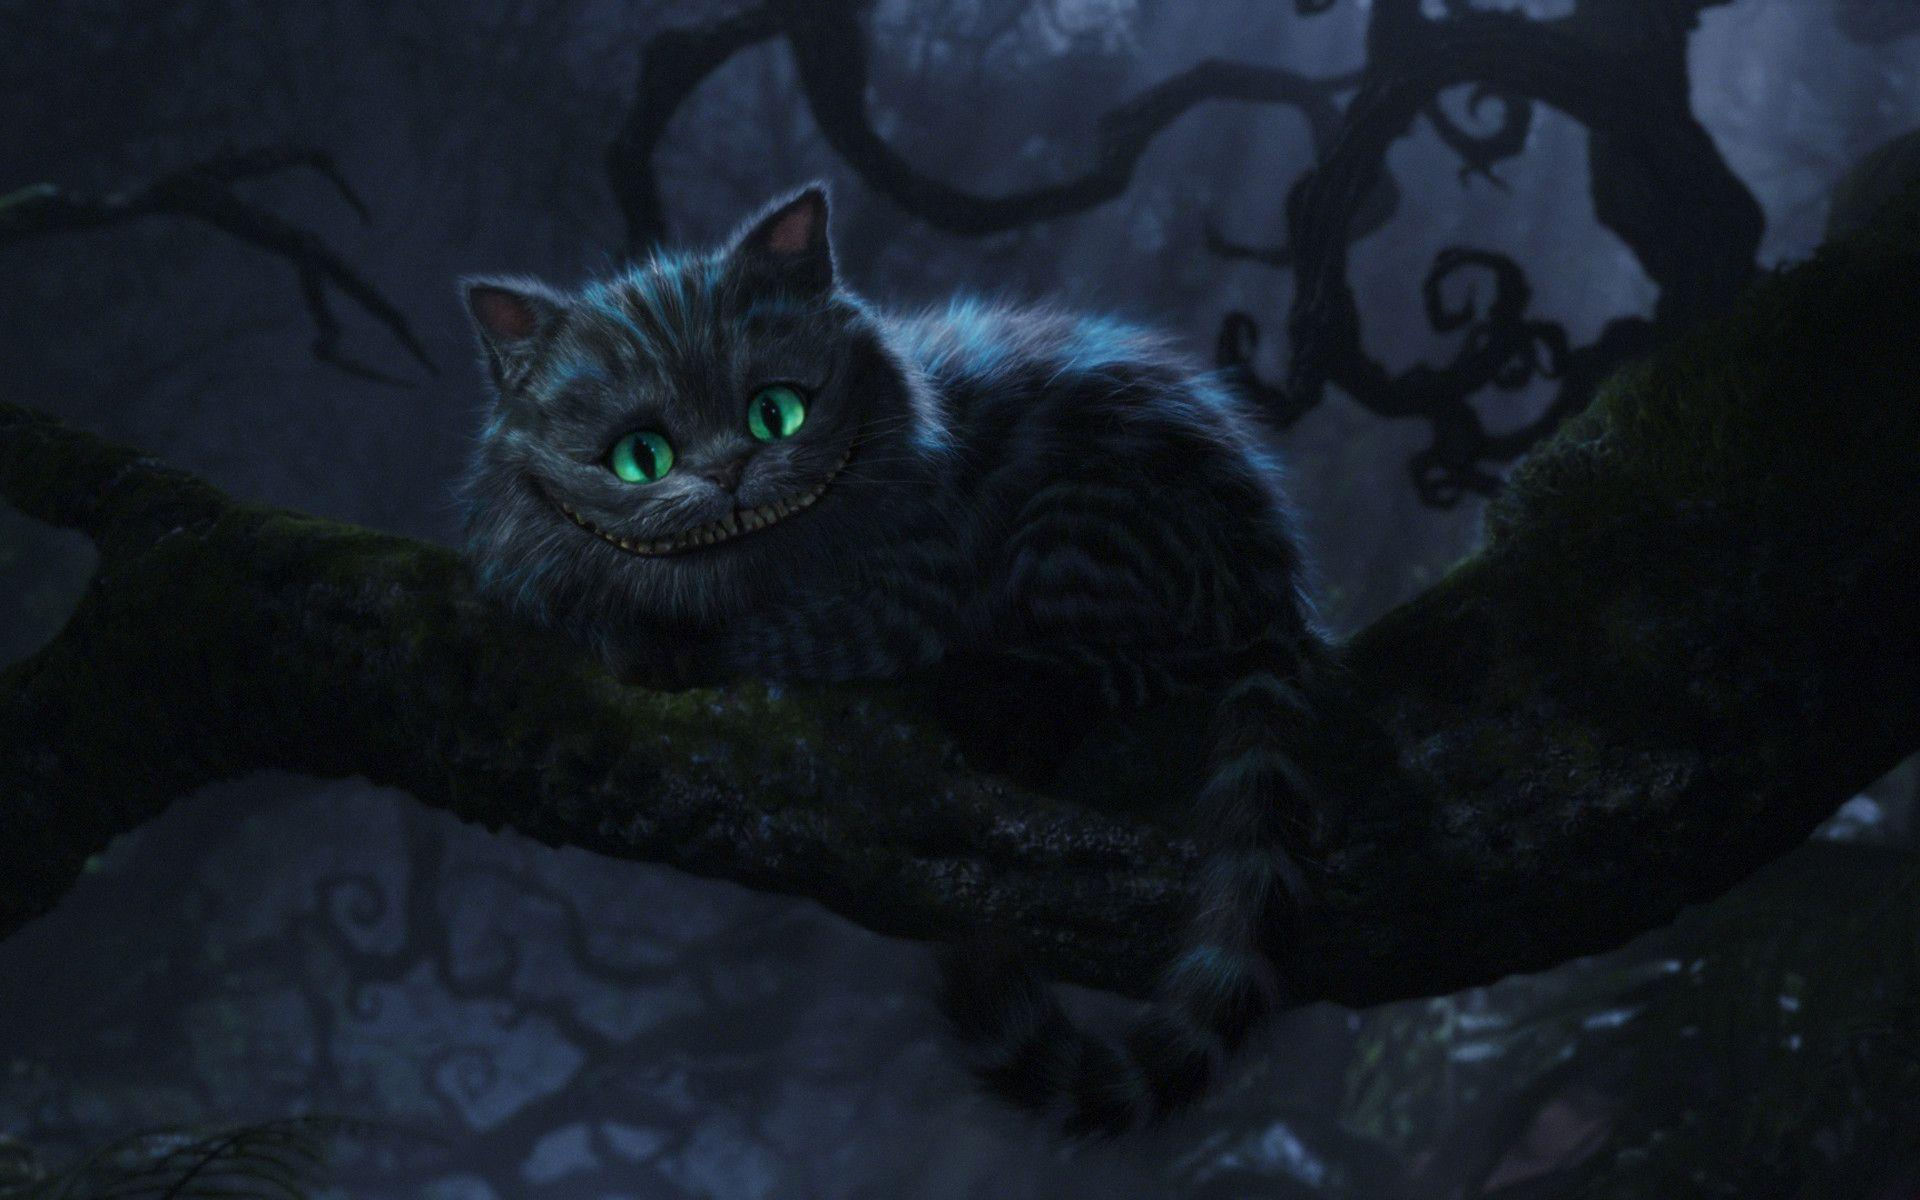 Cheshire Cat Wallpapers Top Free Cheshire Cat Backgrounds Wallpaperaccess